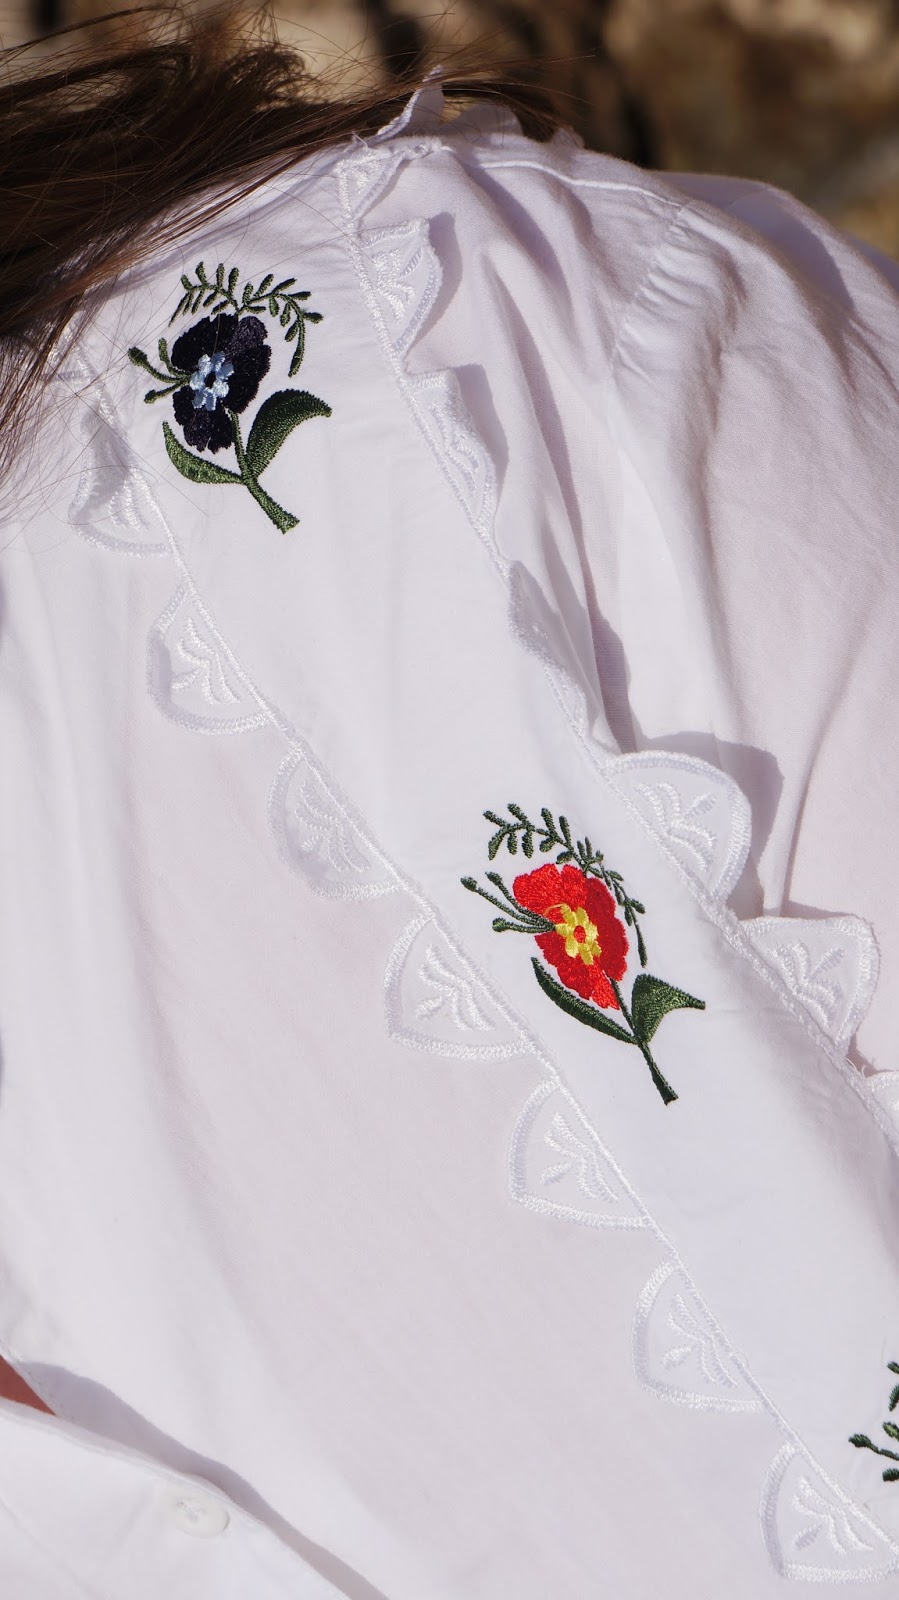 Topshop shirt with embroidered flowers